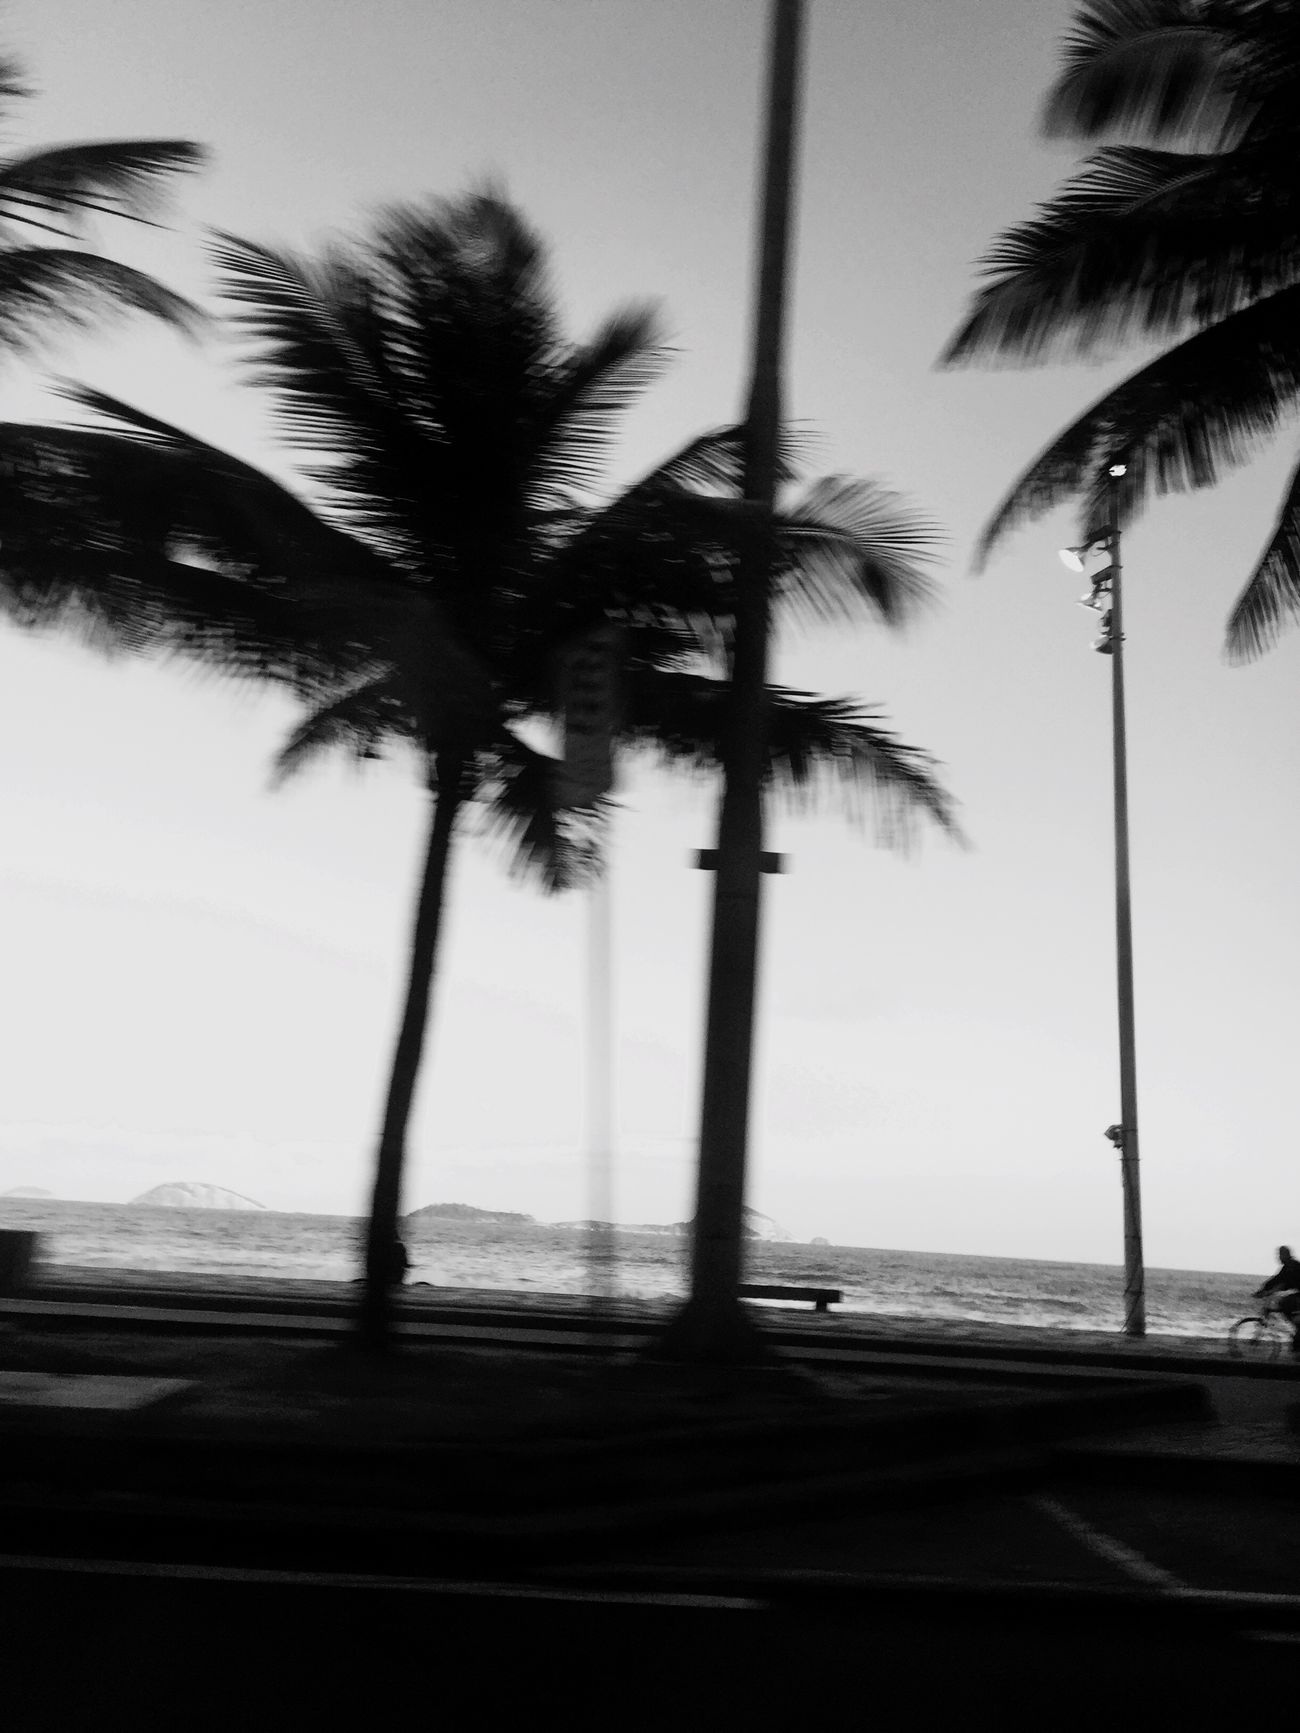 The Street Photographer - 2017 EyeEm Awards Palm Tree Outdoors Beach Beauty In Nature Hipstamatic Horizon Over Water IPhoneography Blackandwhite Photography Blackandwhite Black And White The Lonely Person In A Connected World